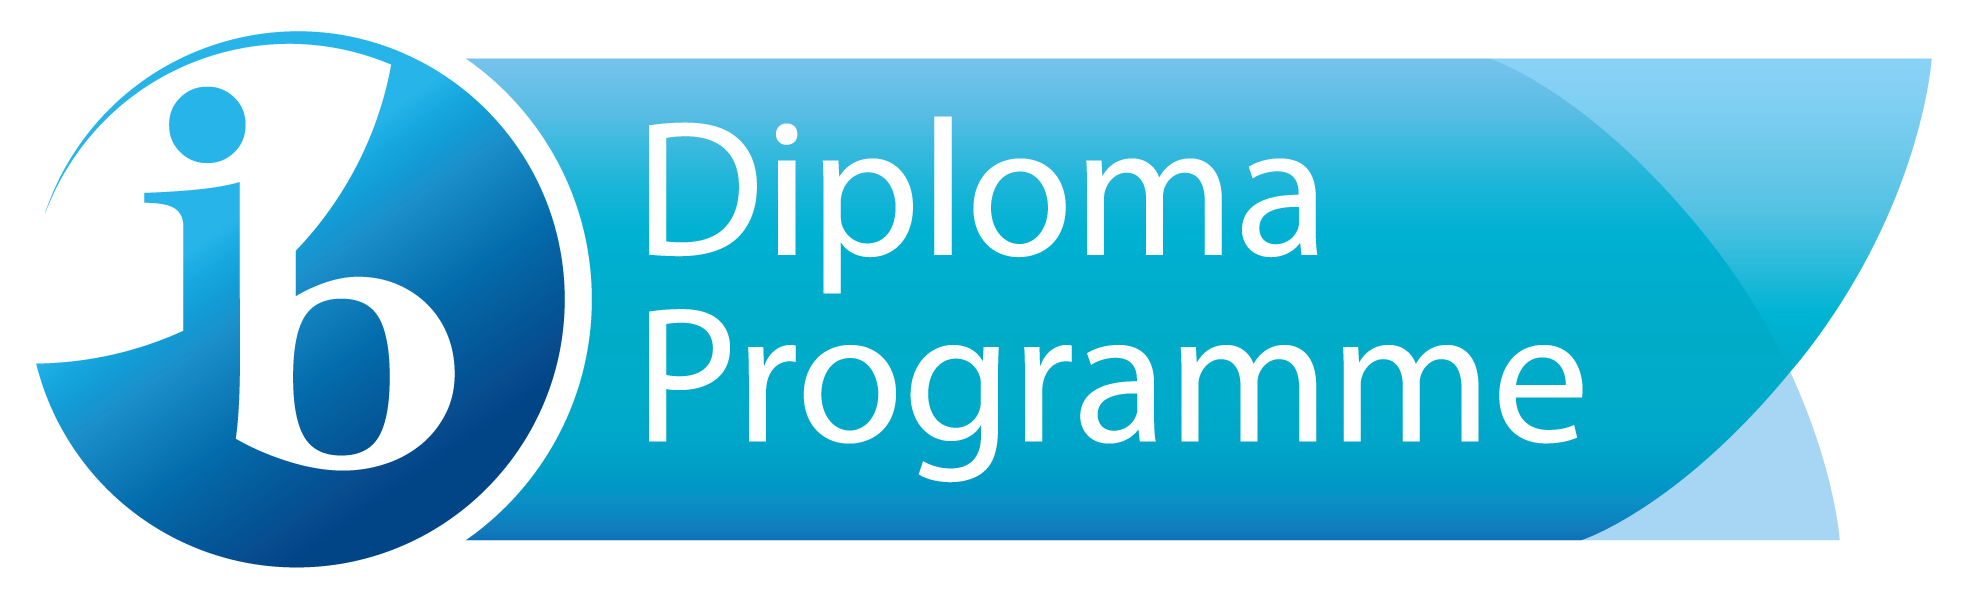 DP programme logo [118KB] png - Logo Ar International PNG